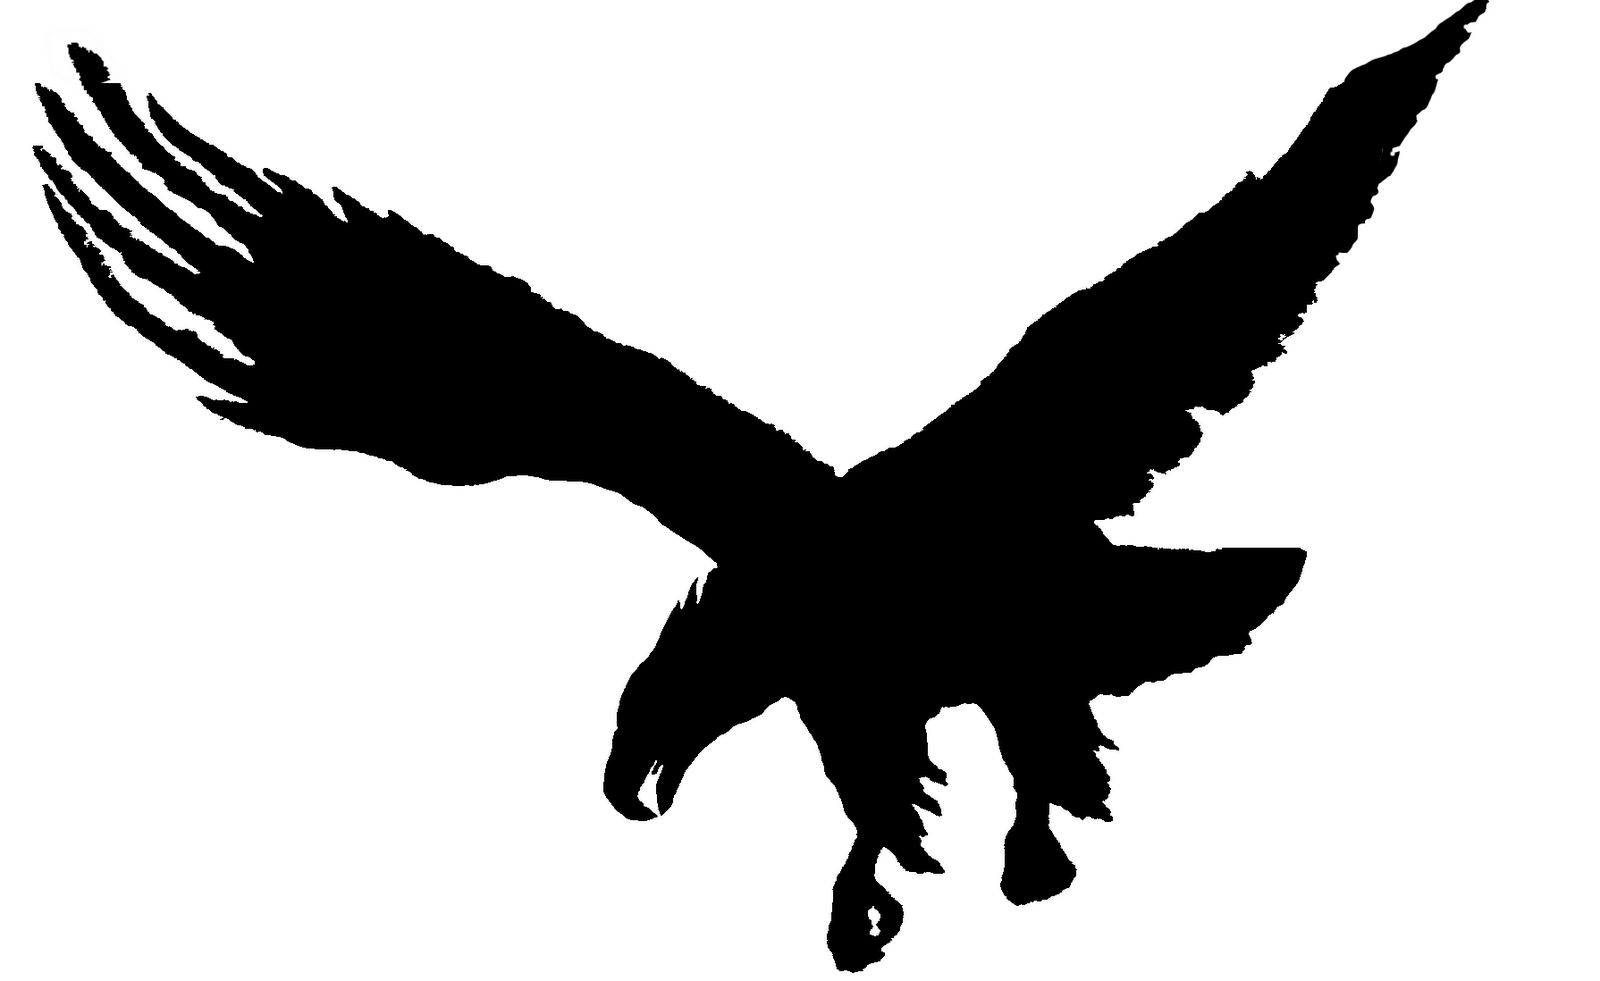 Eagle Silhouette - ClipArt Best Eagle Silhouette Vector